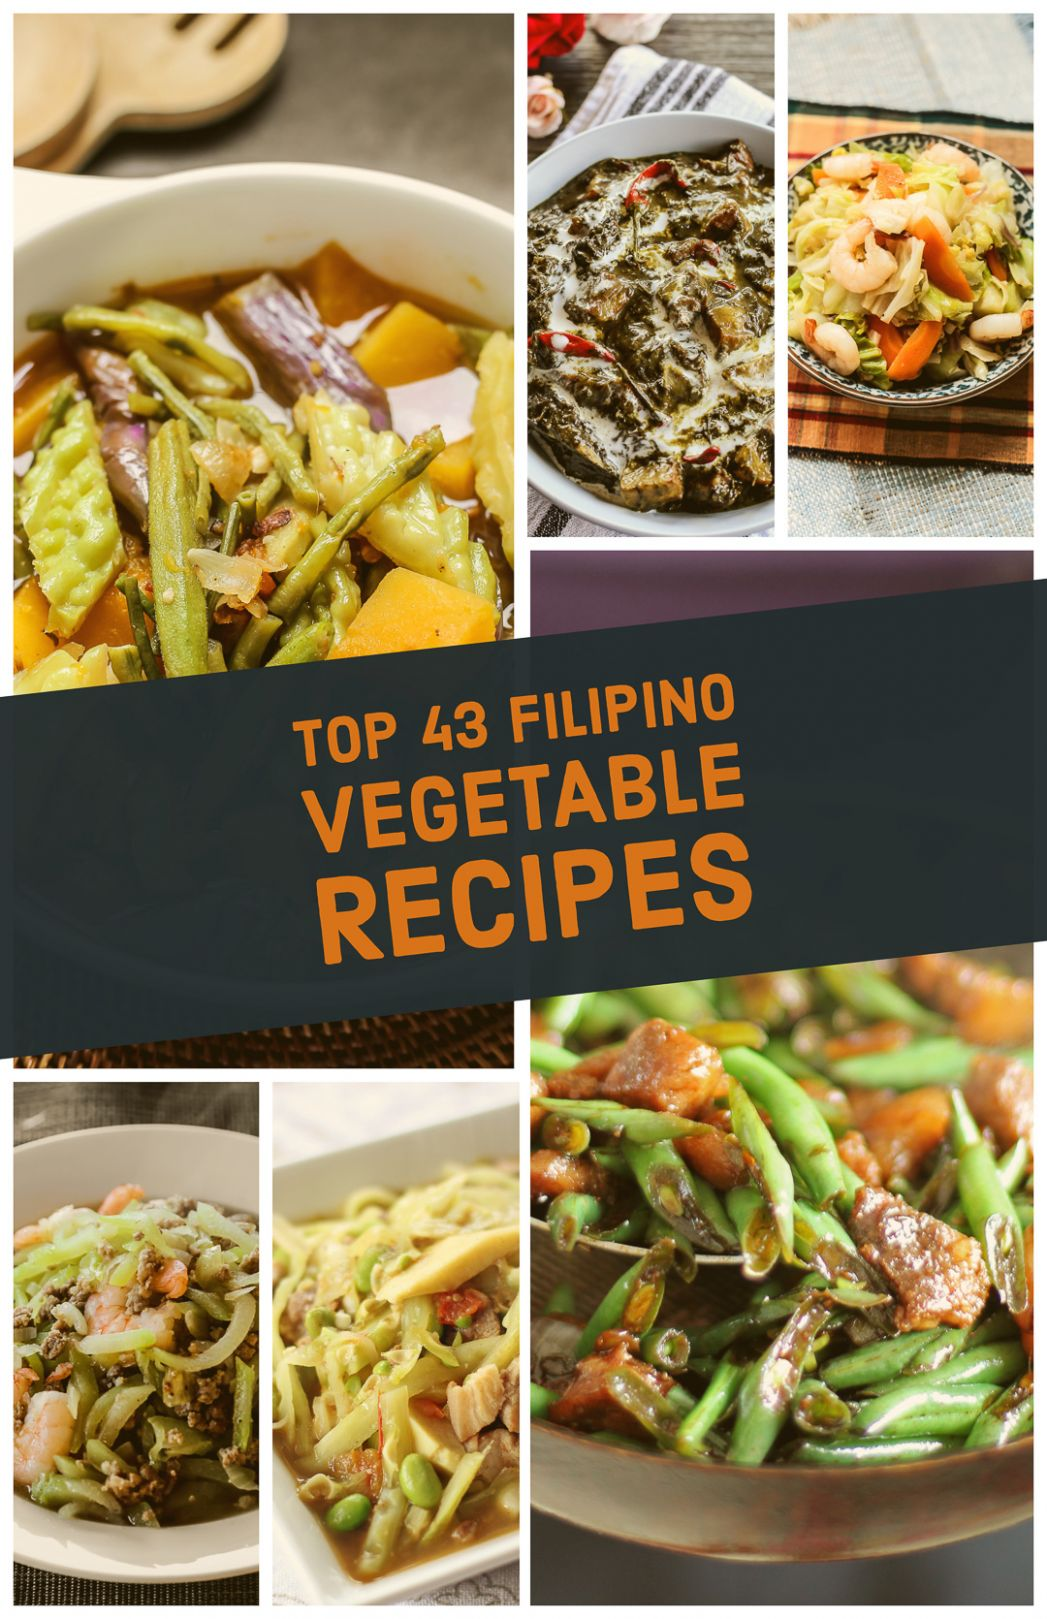 Top 11 Filipino Vegetable Recipes - Ang Sarap - Vegetable Recipes Names